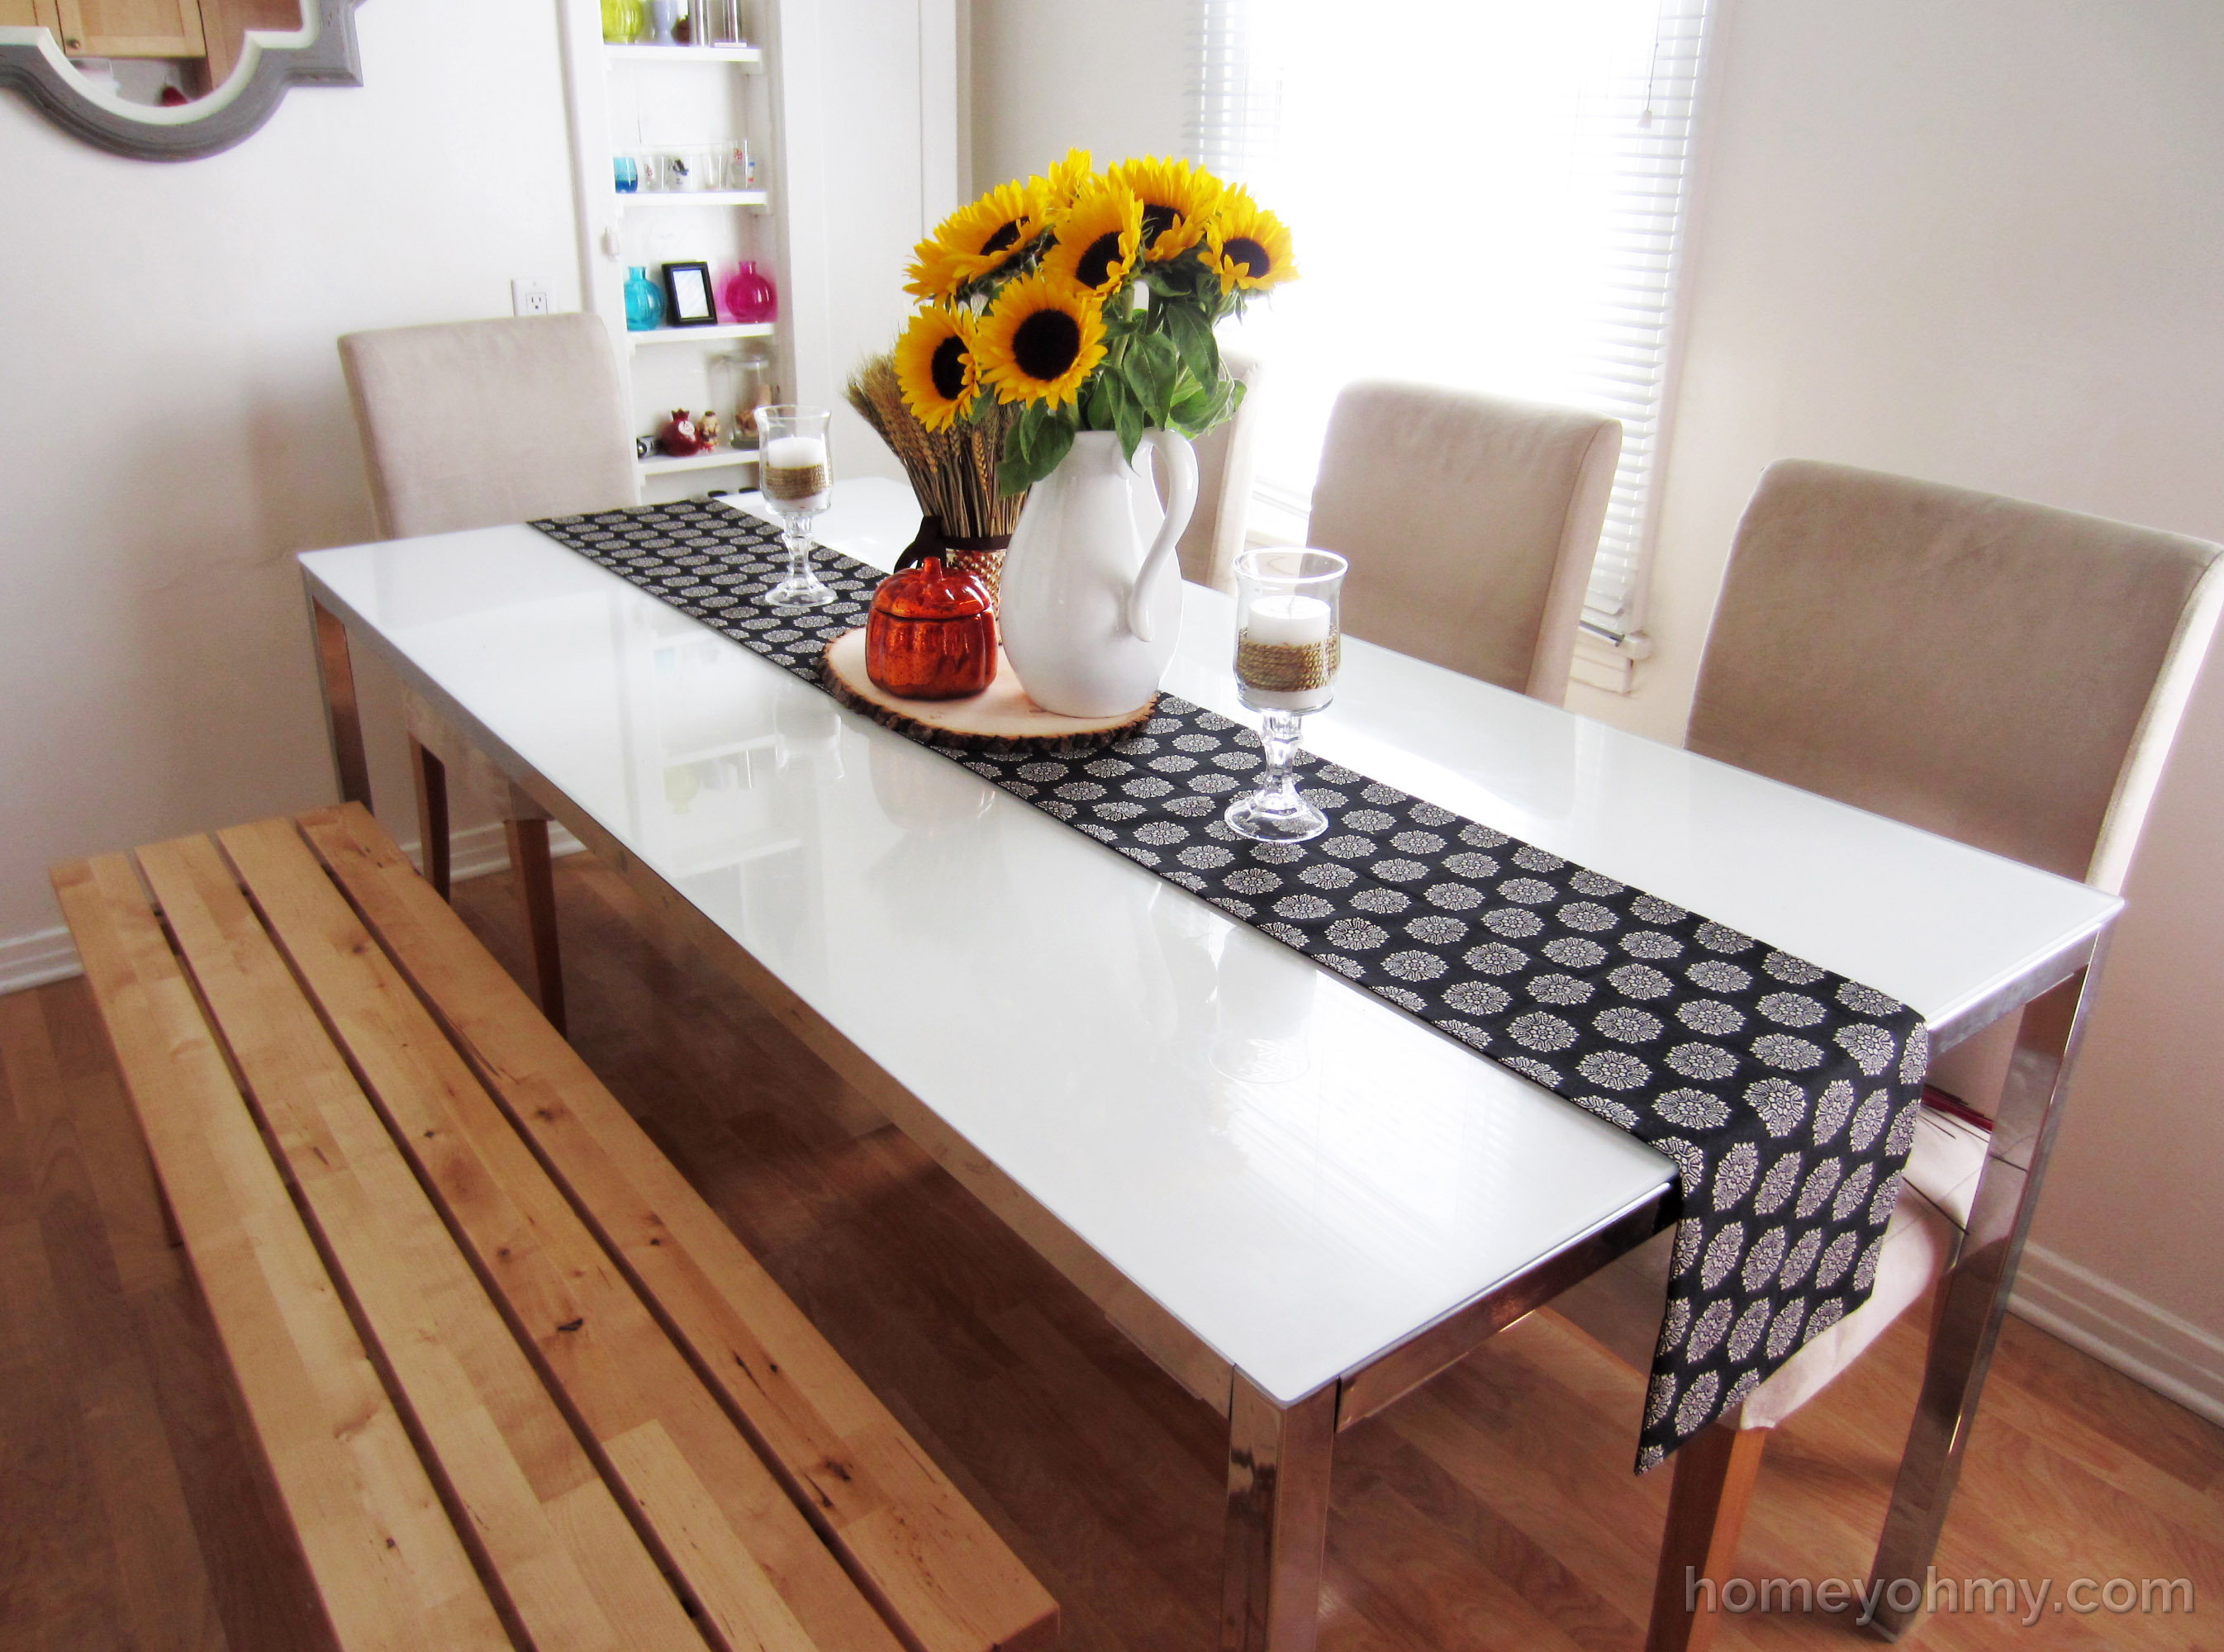 Charmant DIY No Sew Table Runner 4